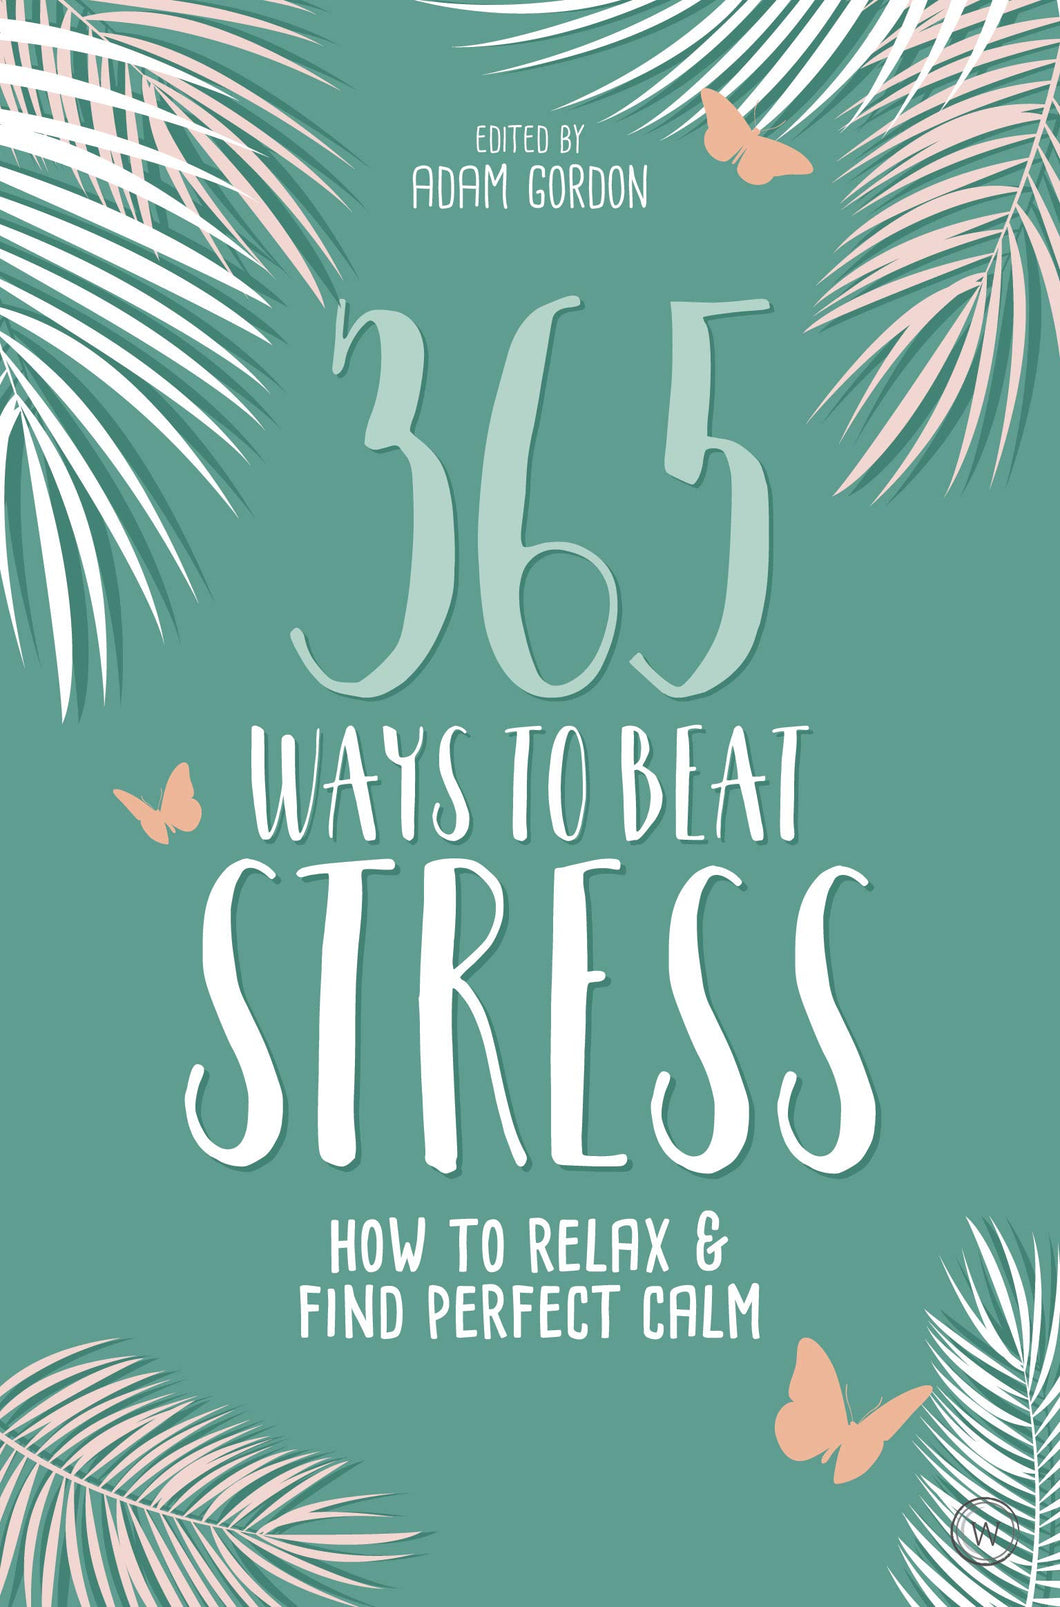 365 ways to beat stress. How to relax and find perfect calm.